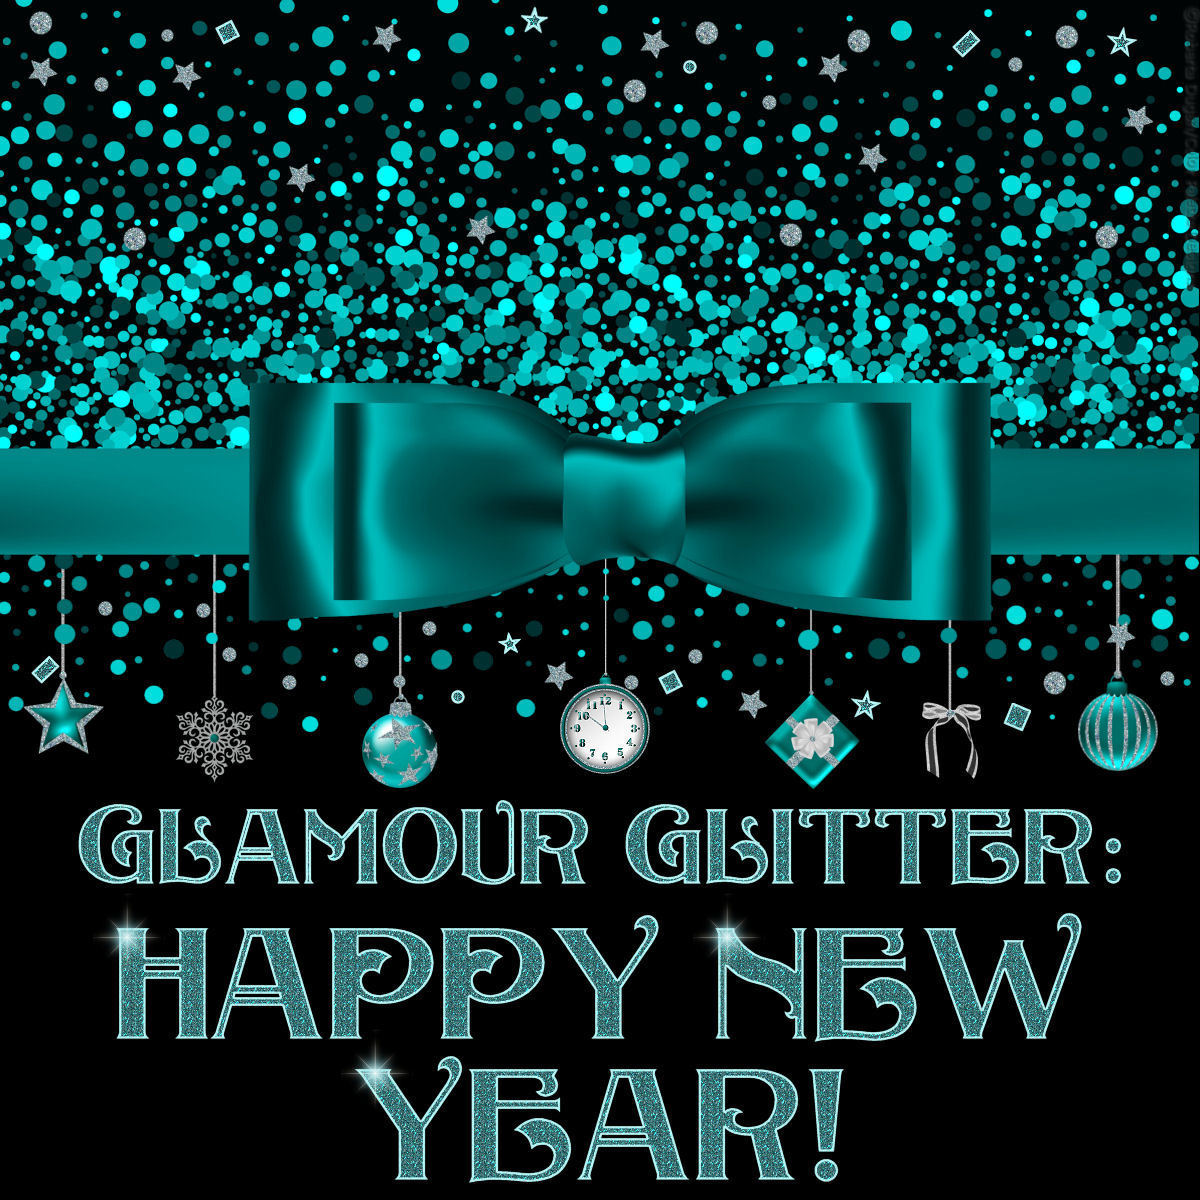 Bling! Glamour Glitter: HAPPY NEW YEAR! Seamless Textures